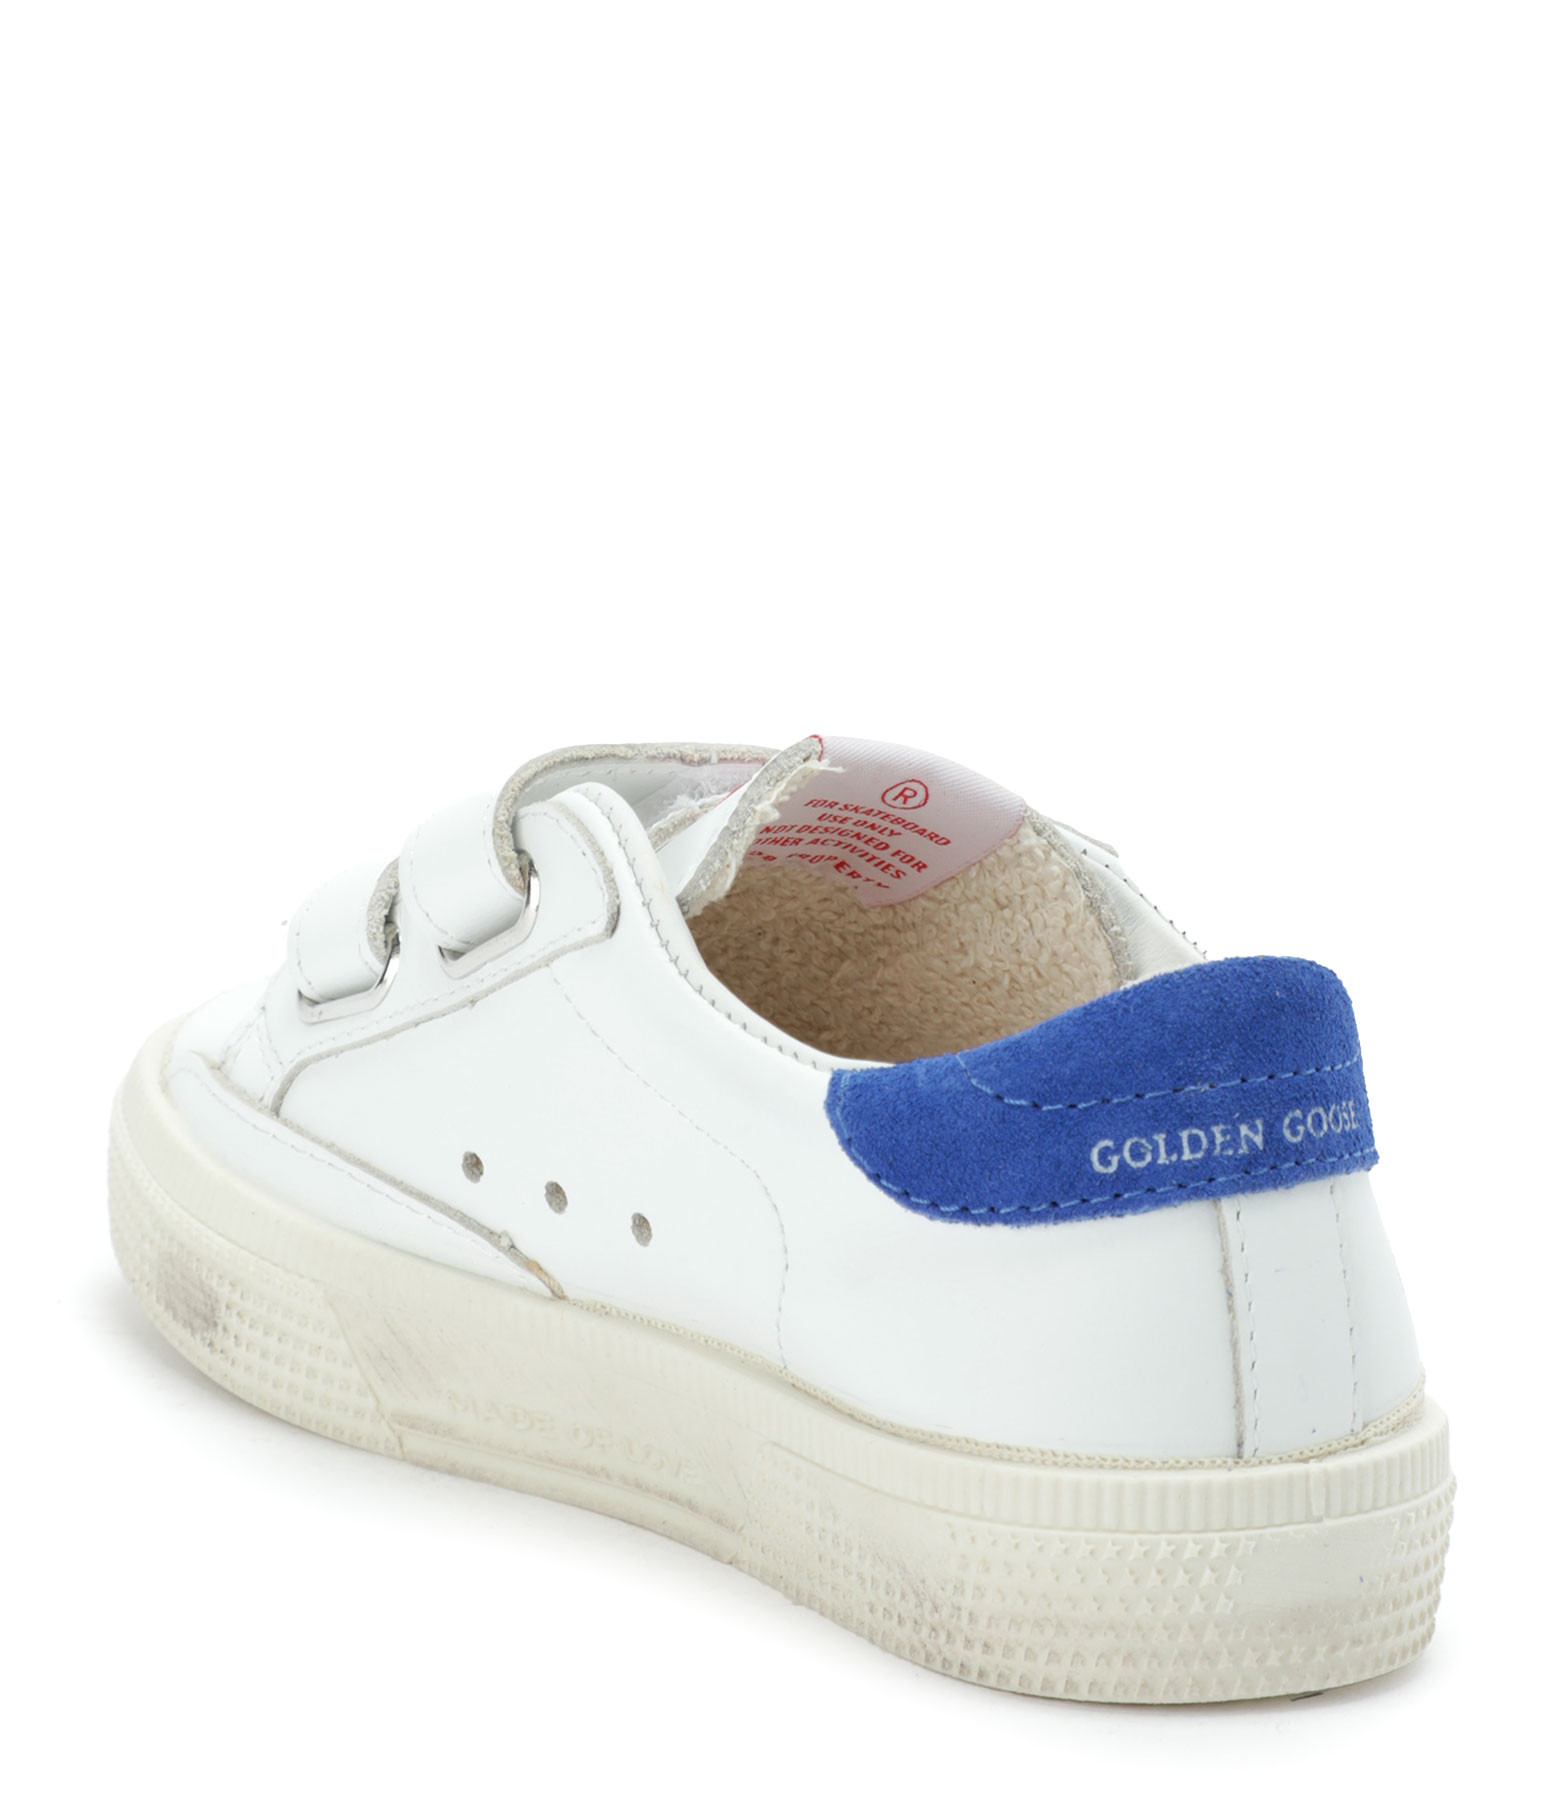 GOLDEN GOOSE - Baskets Bébé May School Cuir Suédé Navy Bleu Roi